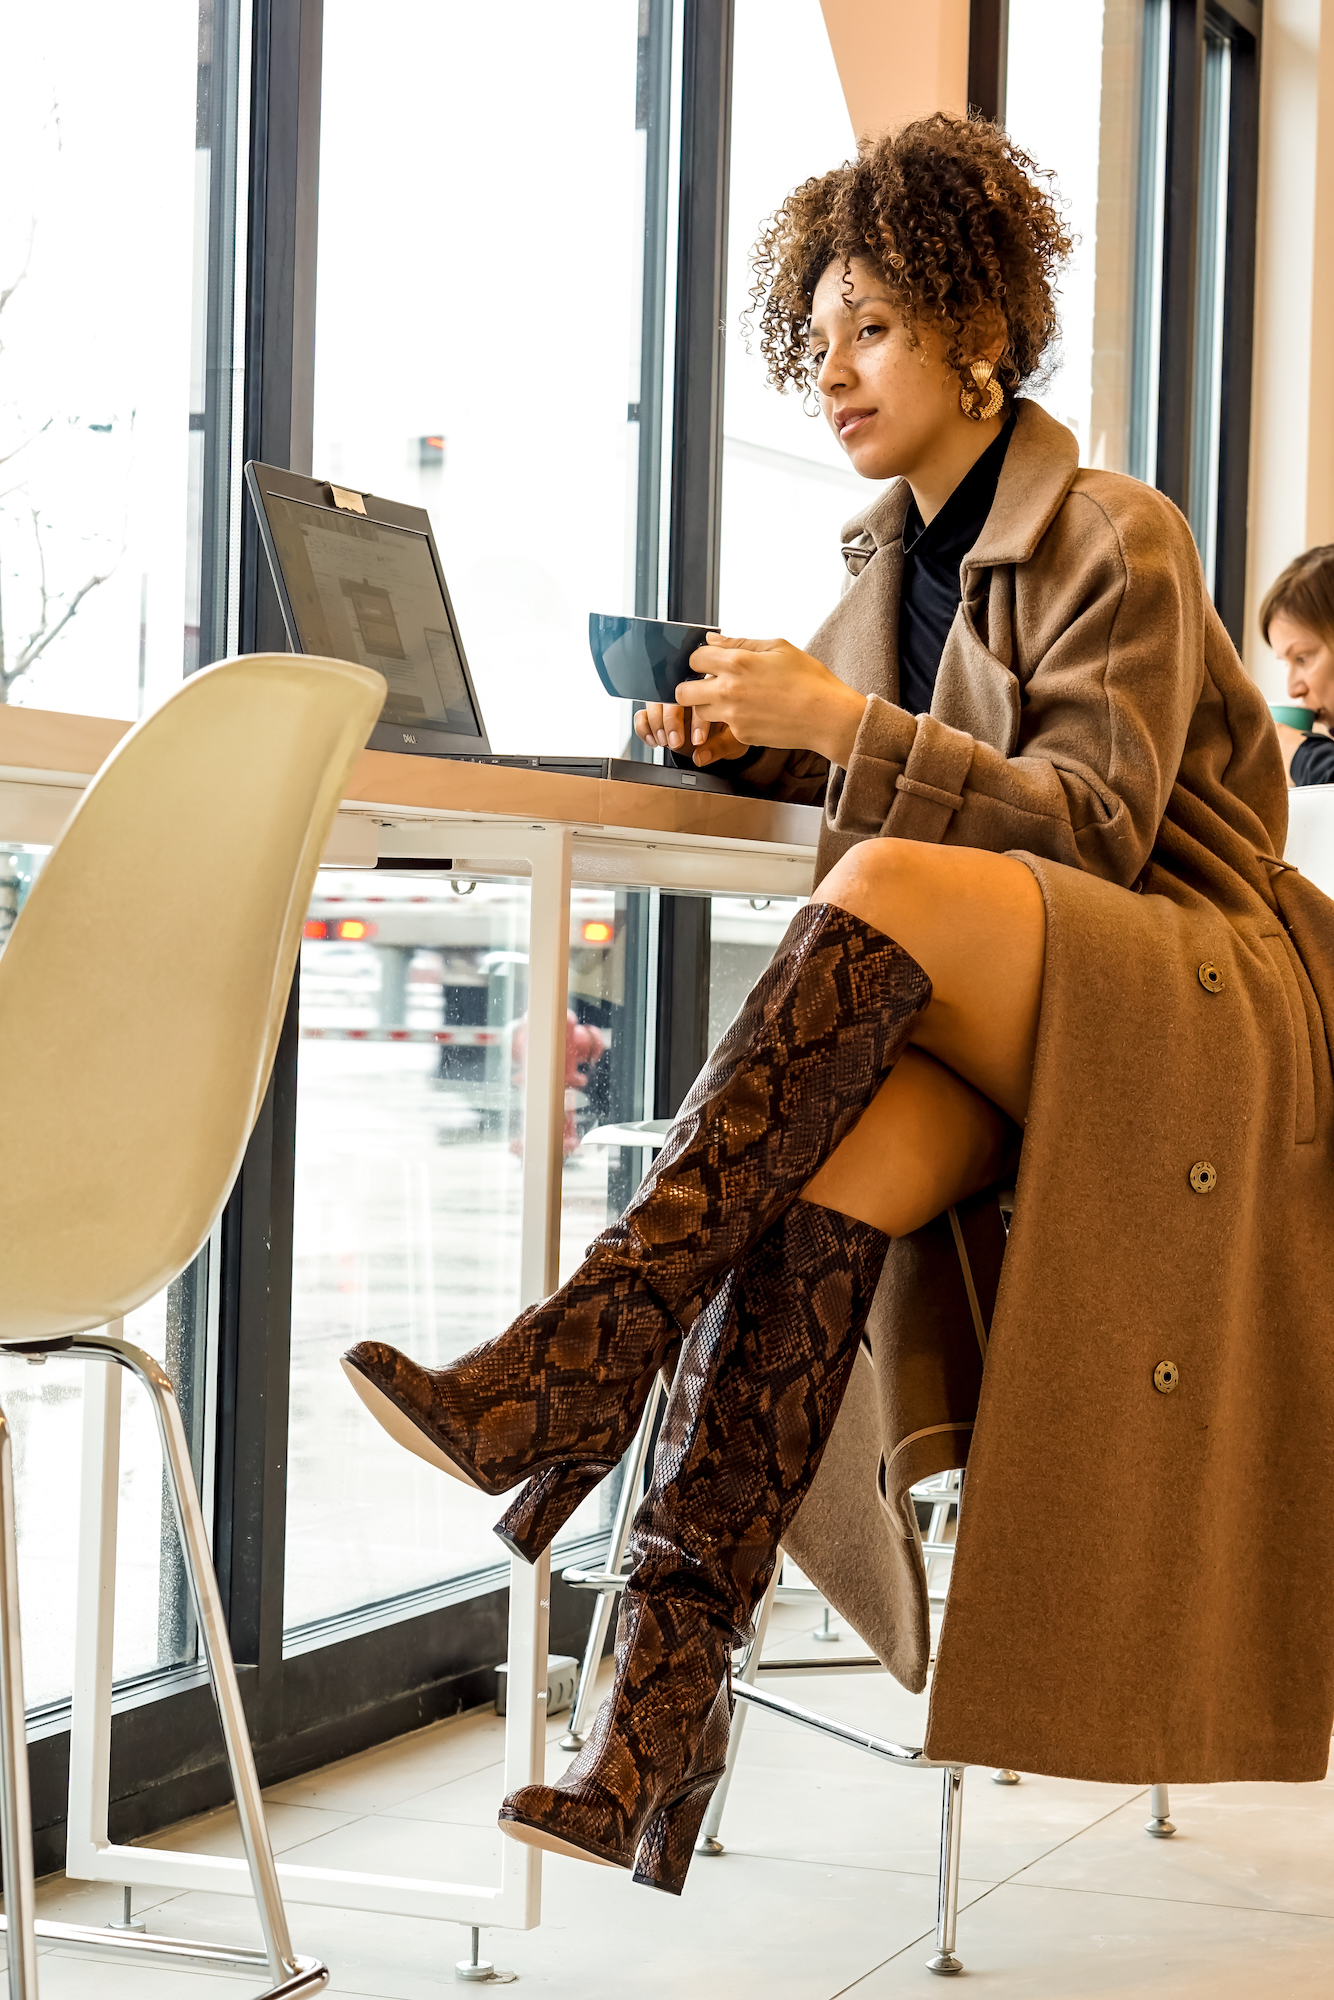 coffee shops in Royal Oak Michigan, fashion blogger style outfits, latest fashion trends for women chic, black fashion bloggers, fashion blogger tips articles, outfits women 20s style inspiration color combos